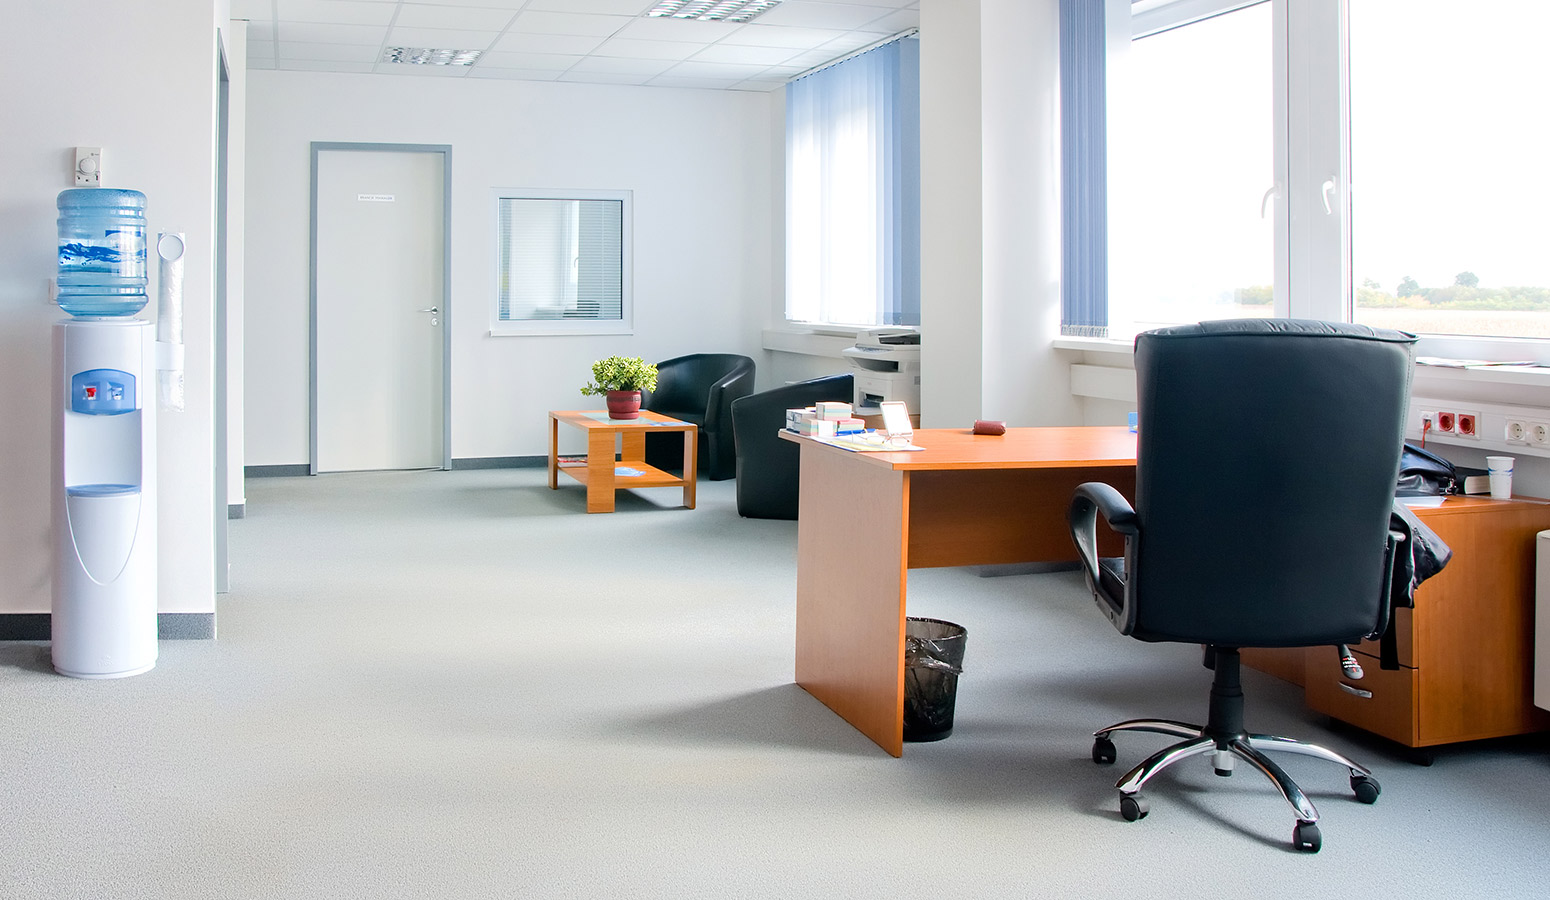 Office cleaning services professional office cleaners for Oficina de empleo bilbao